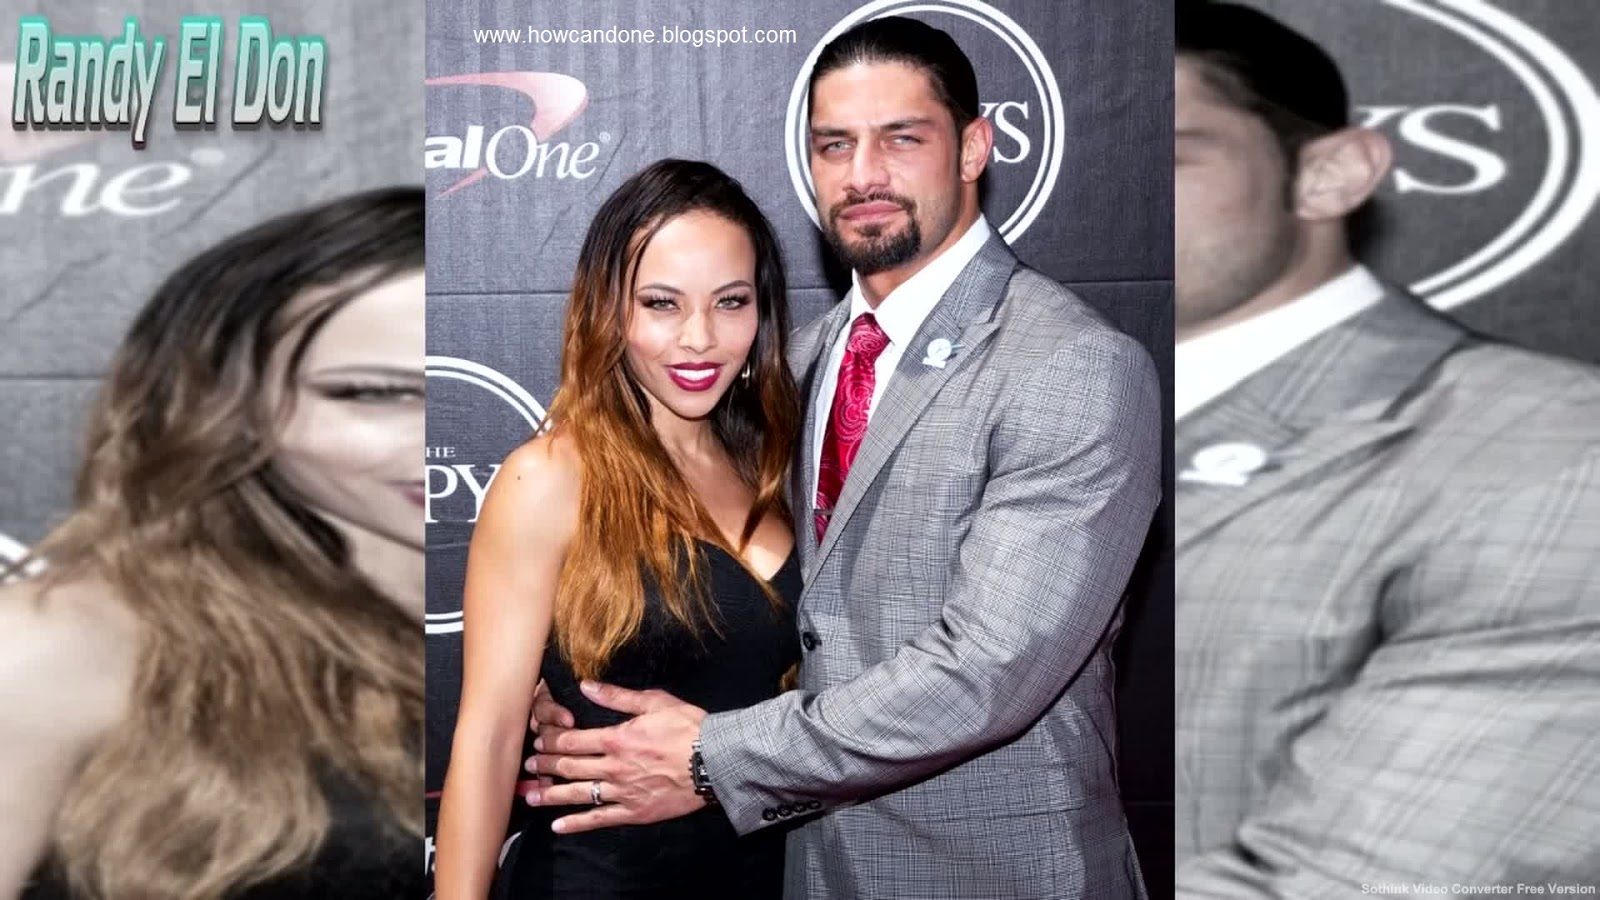 wwe superstars dating divas 2013 Wwe superstars natalya and the wwe couple tied the knot this week with tons of wwe superstars and divas alike in natayla and tyson started dating back.